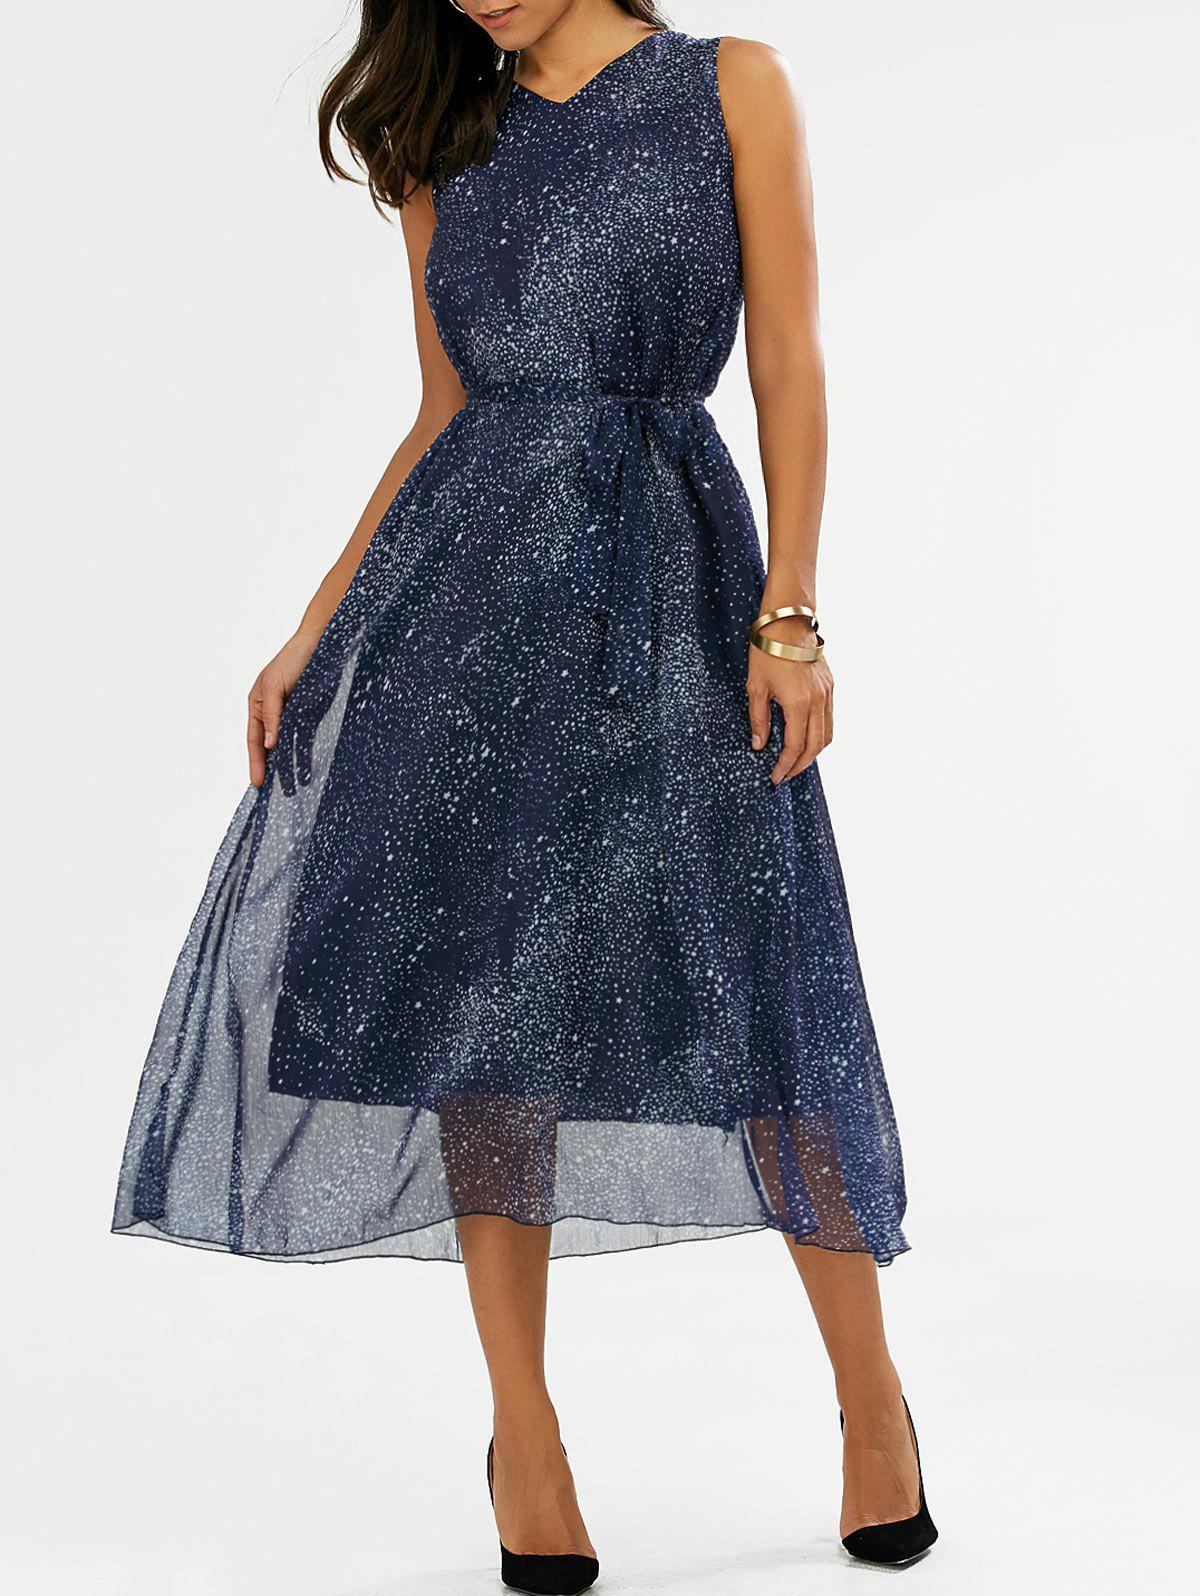 V Neck Galaxy Print Midi Chiffon Dress - BLUE XL